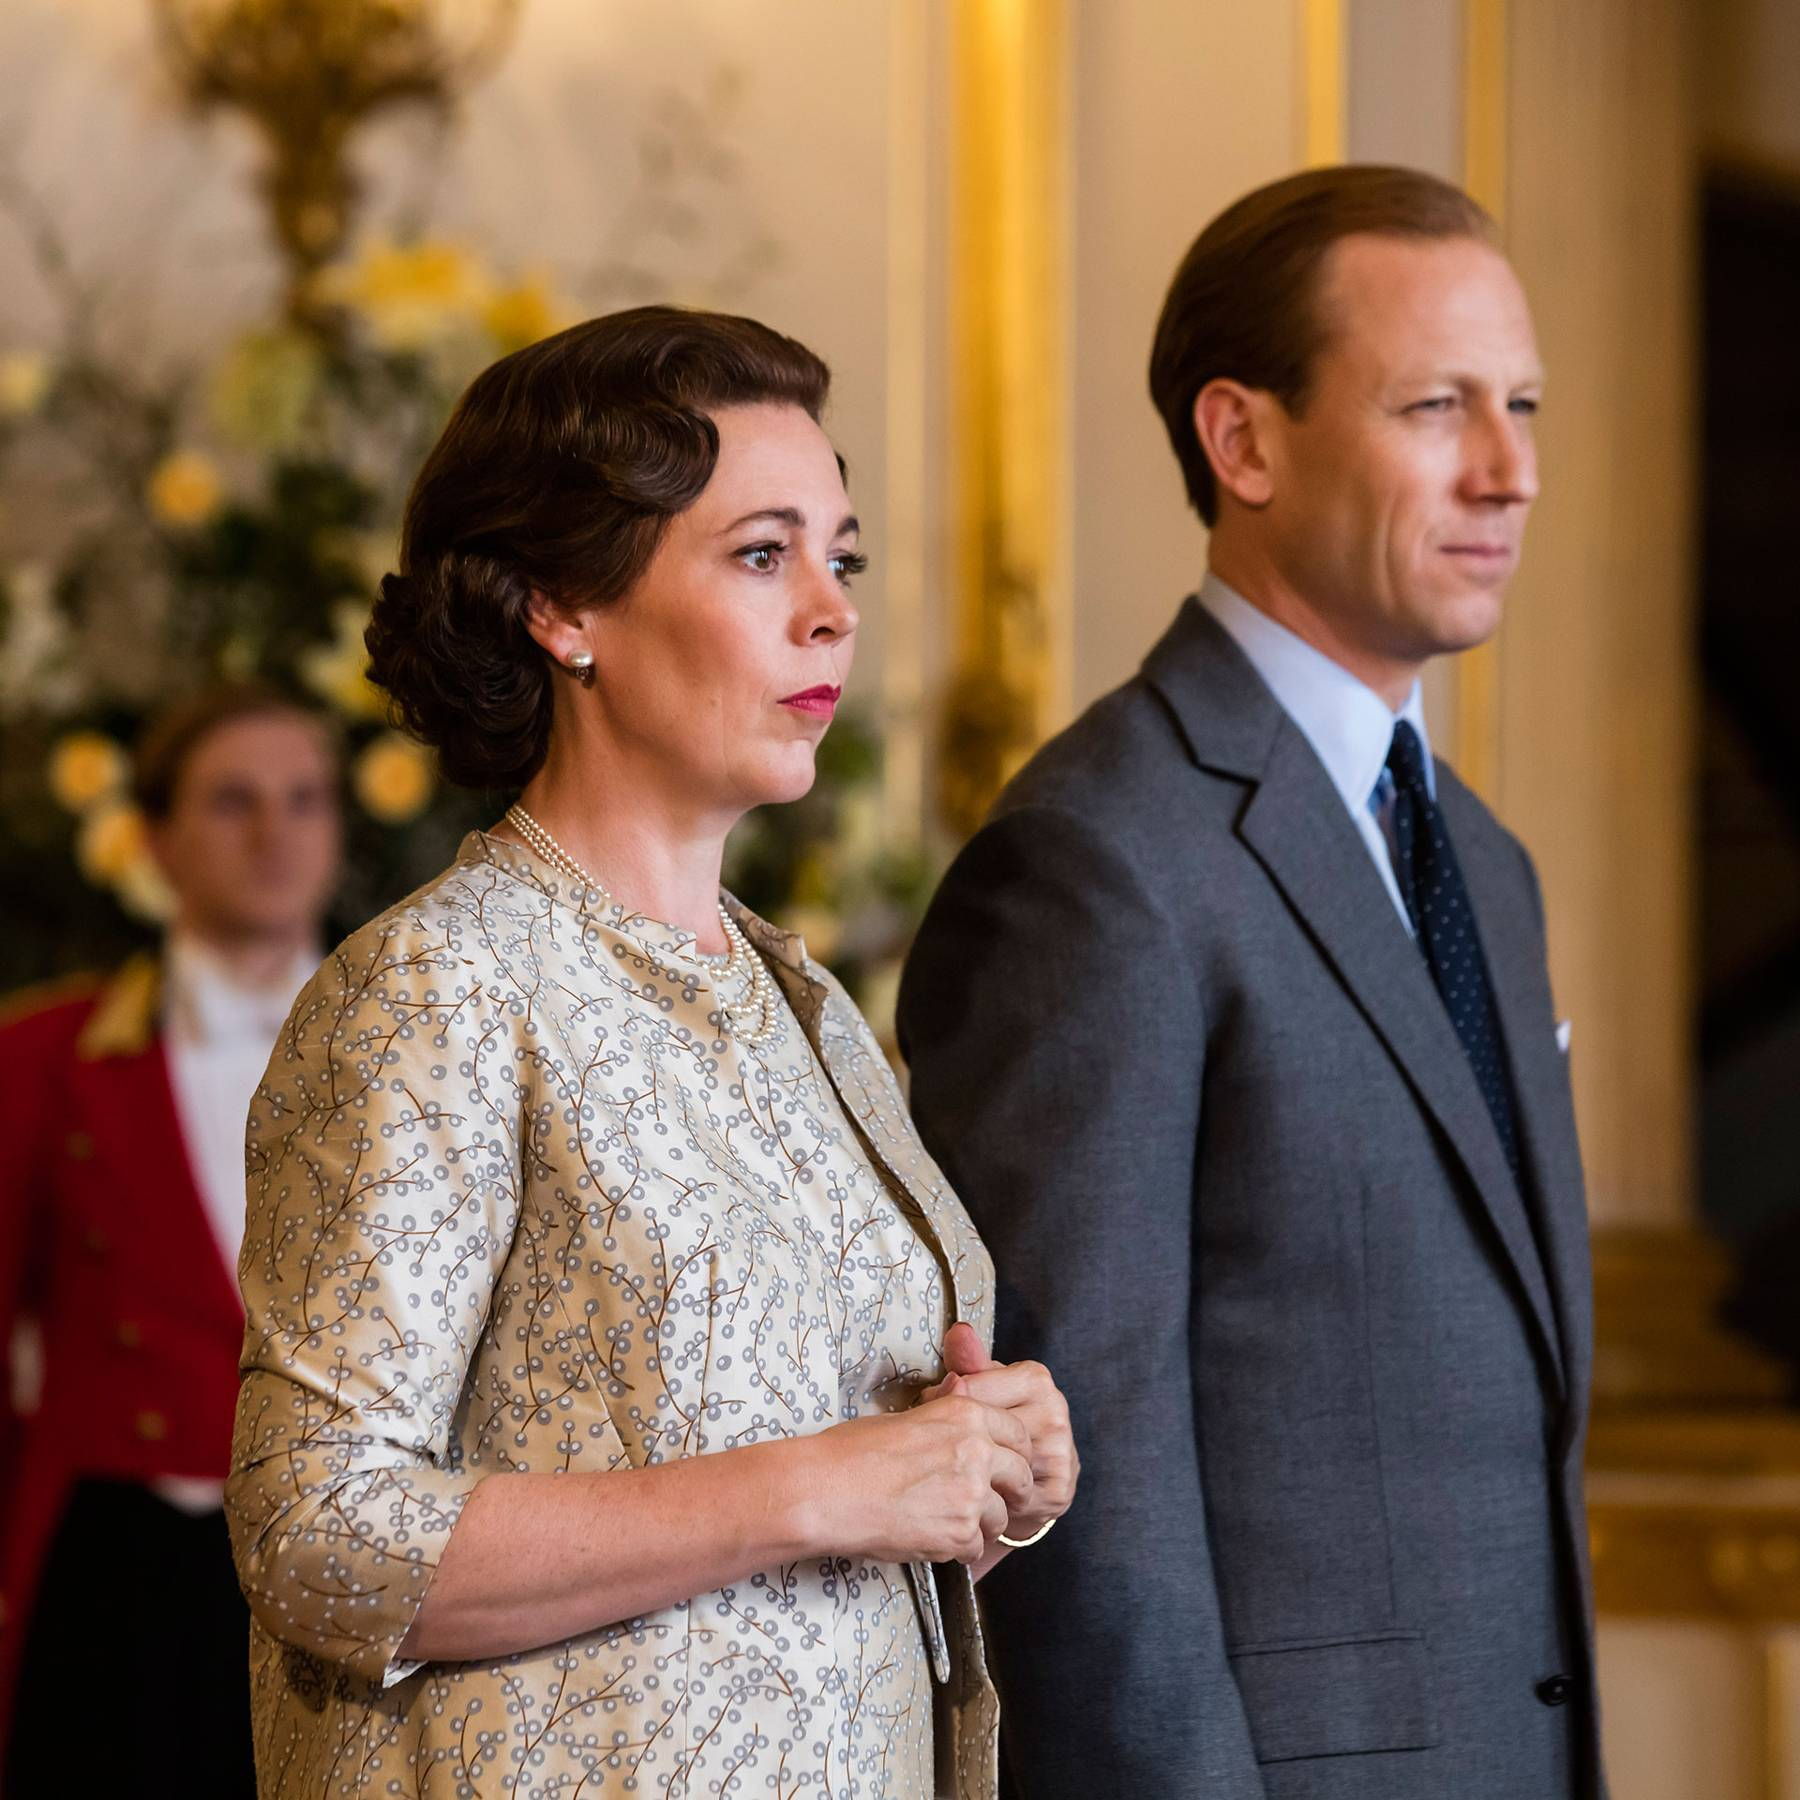 The Crown has been watched by 73 million households according to Netflix